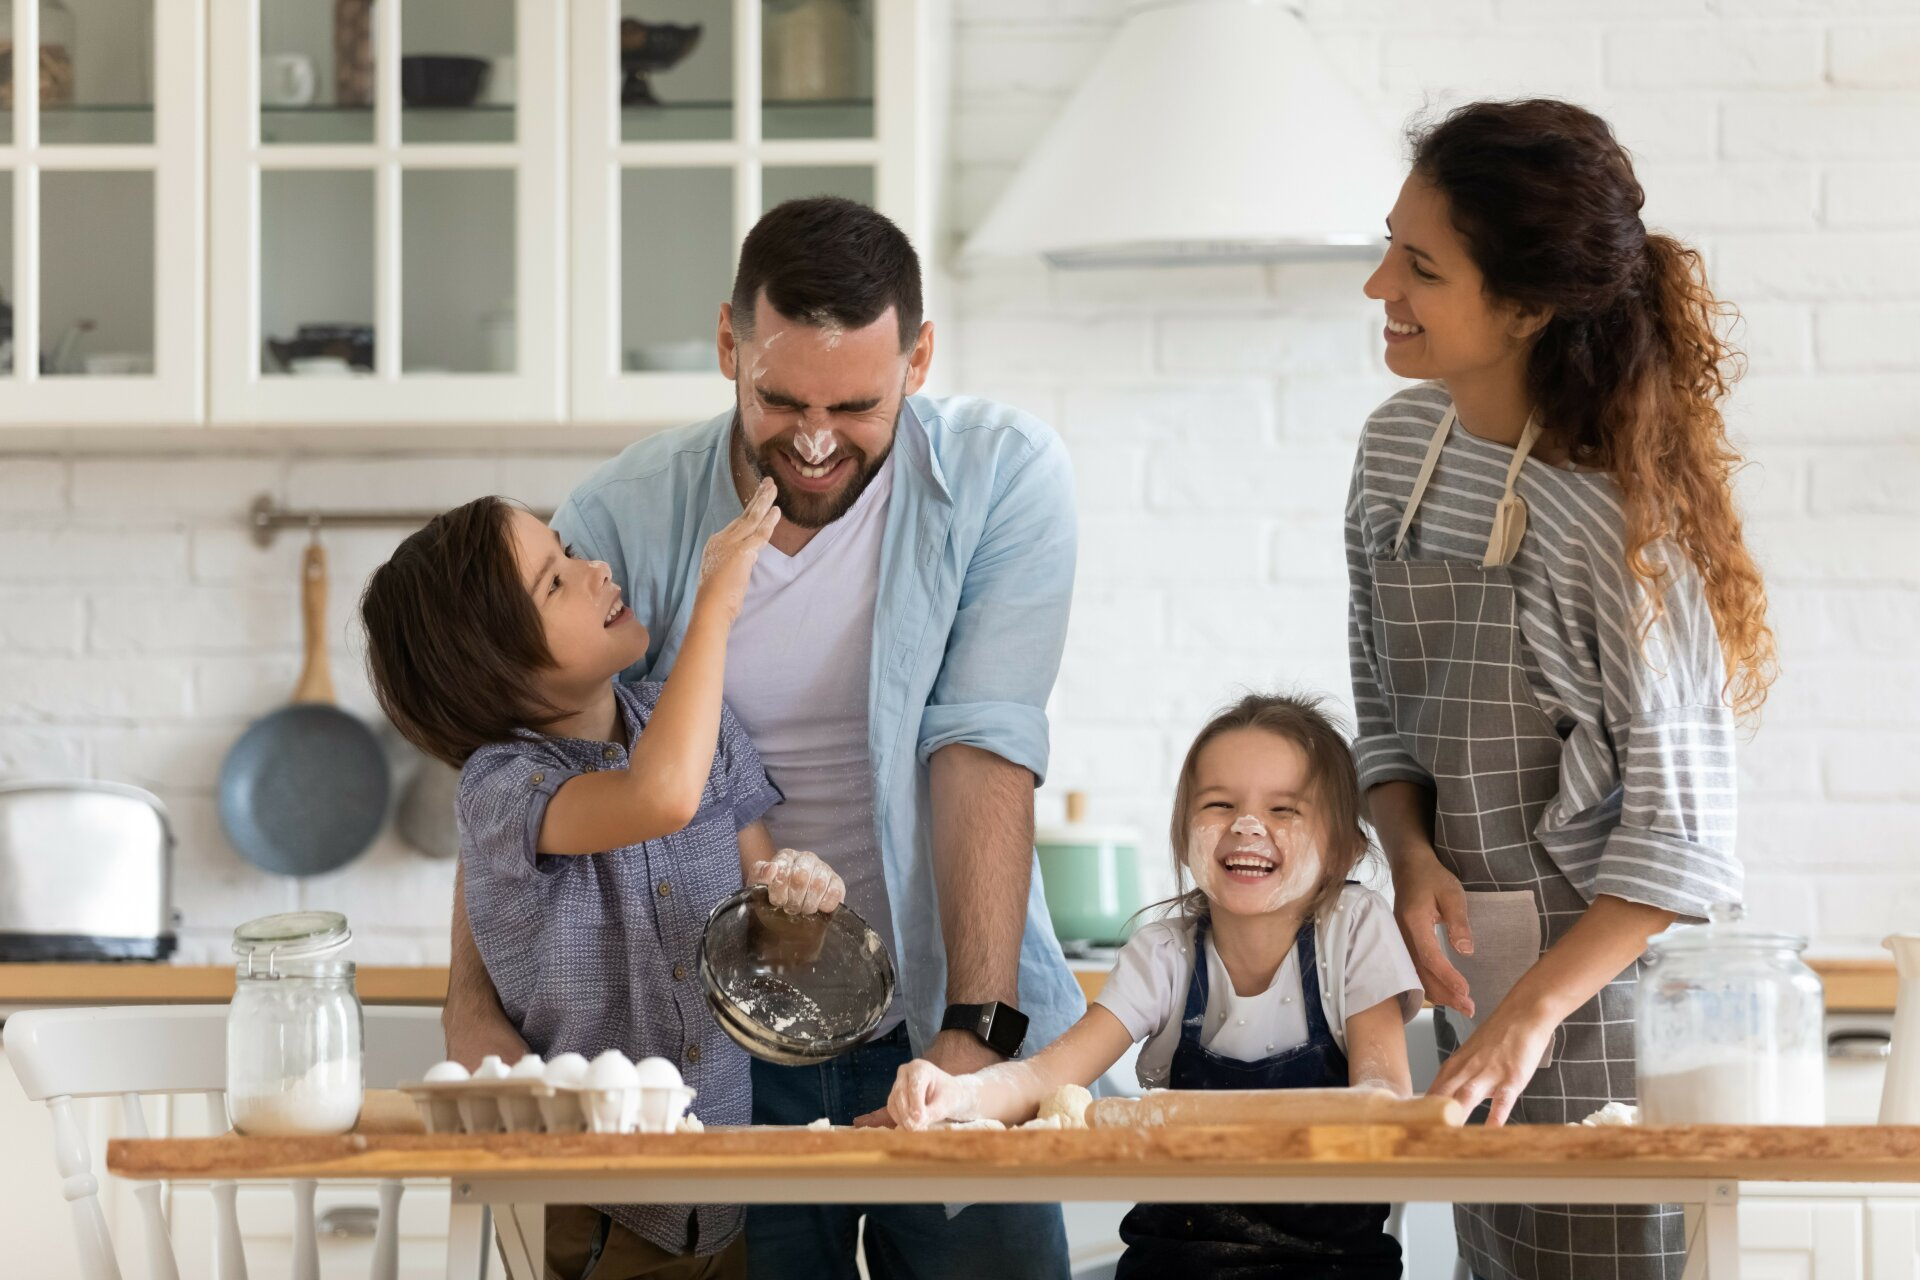 A father, mother, son and daughter bake playfully together in a beautiful, modern kitchen with stylish white cupboards in the background.